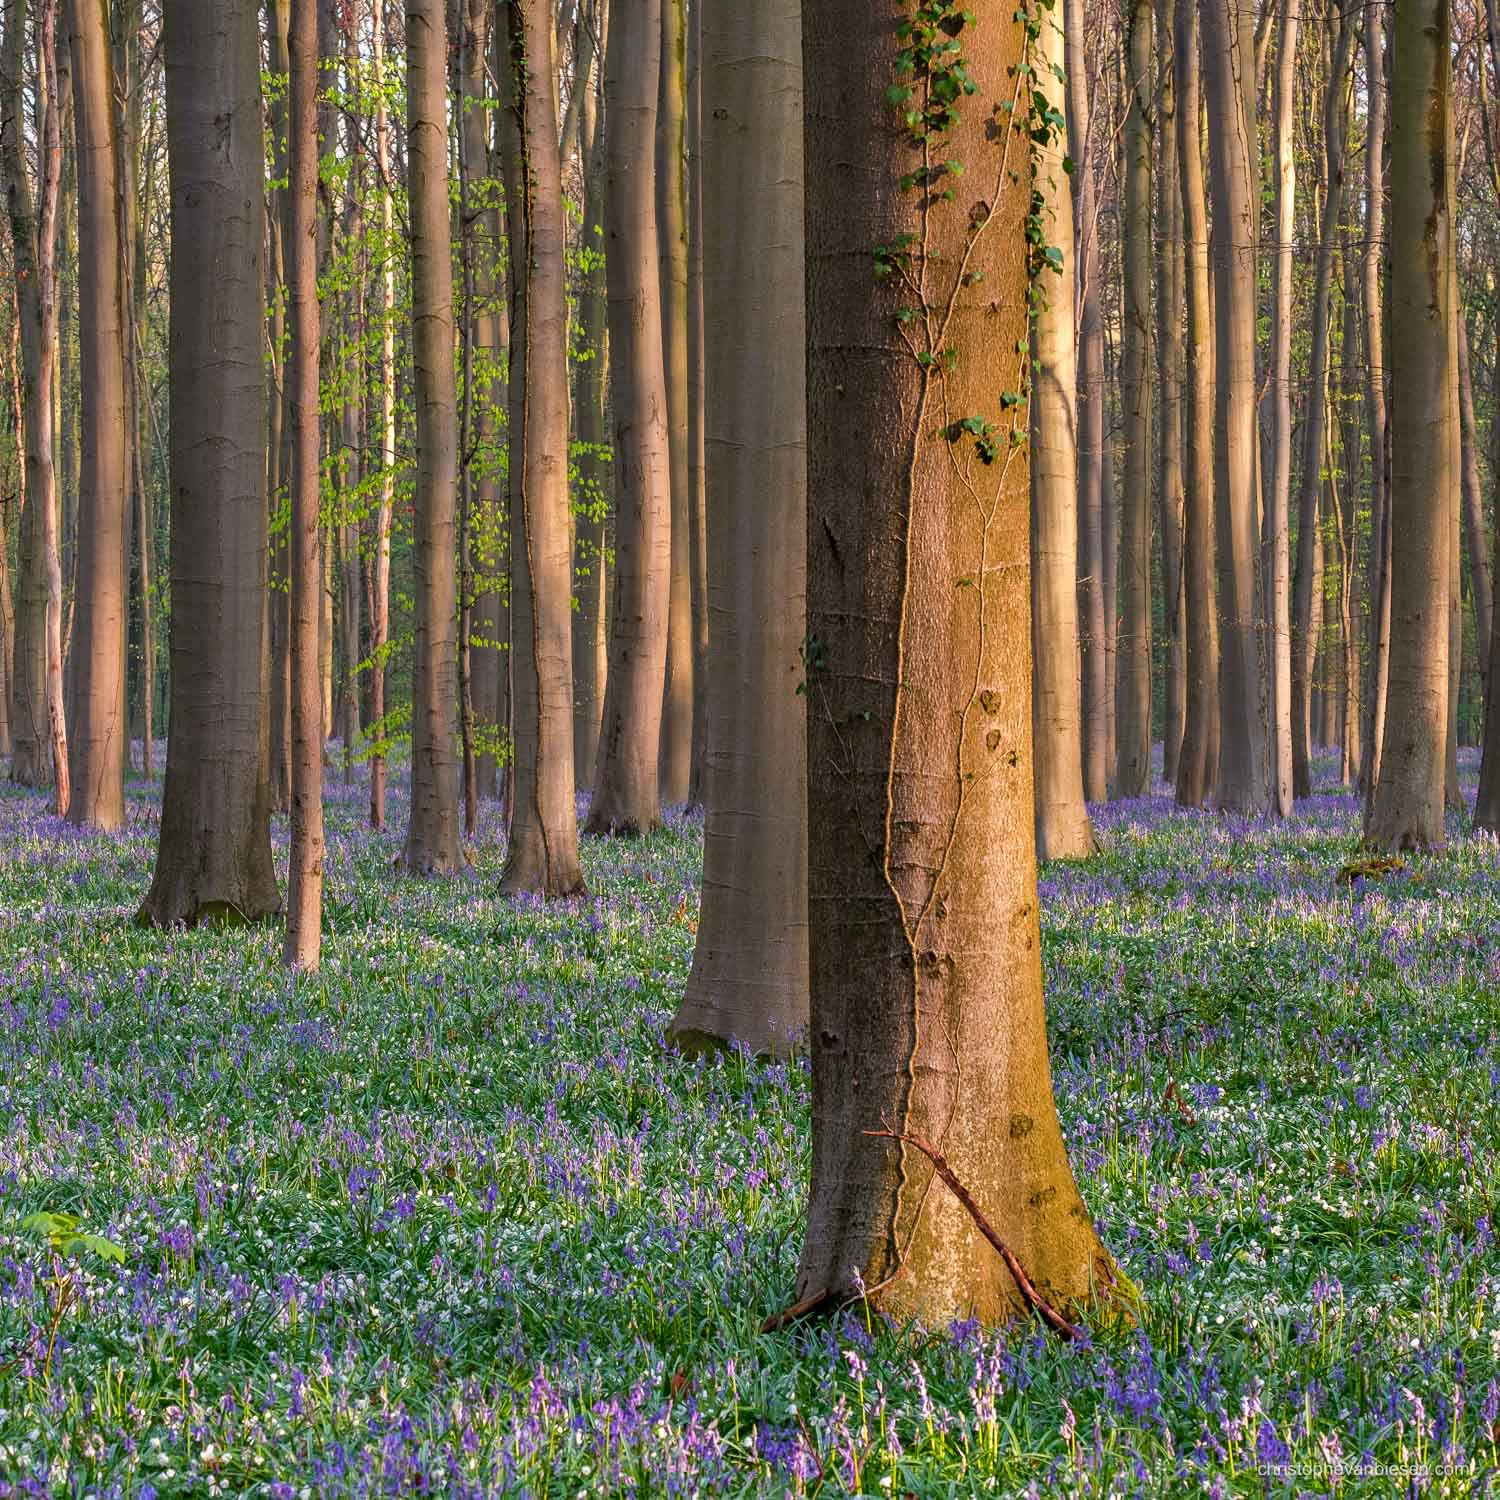 Hallerbos - Belgium - Sunrise in Belgium's bluebell forest - Anemones and Bluebells